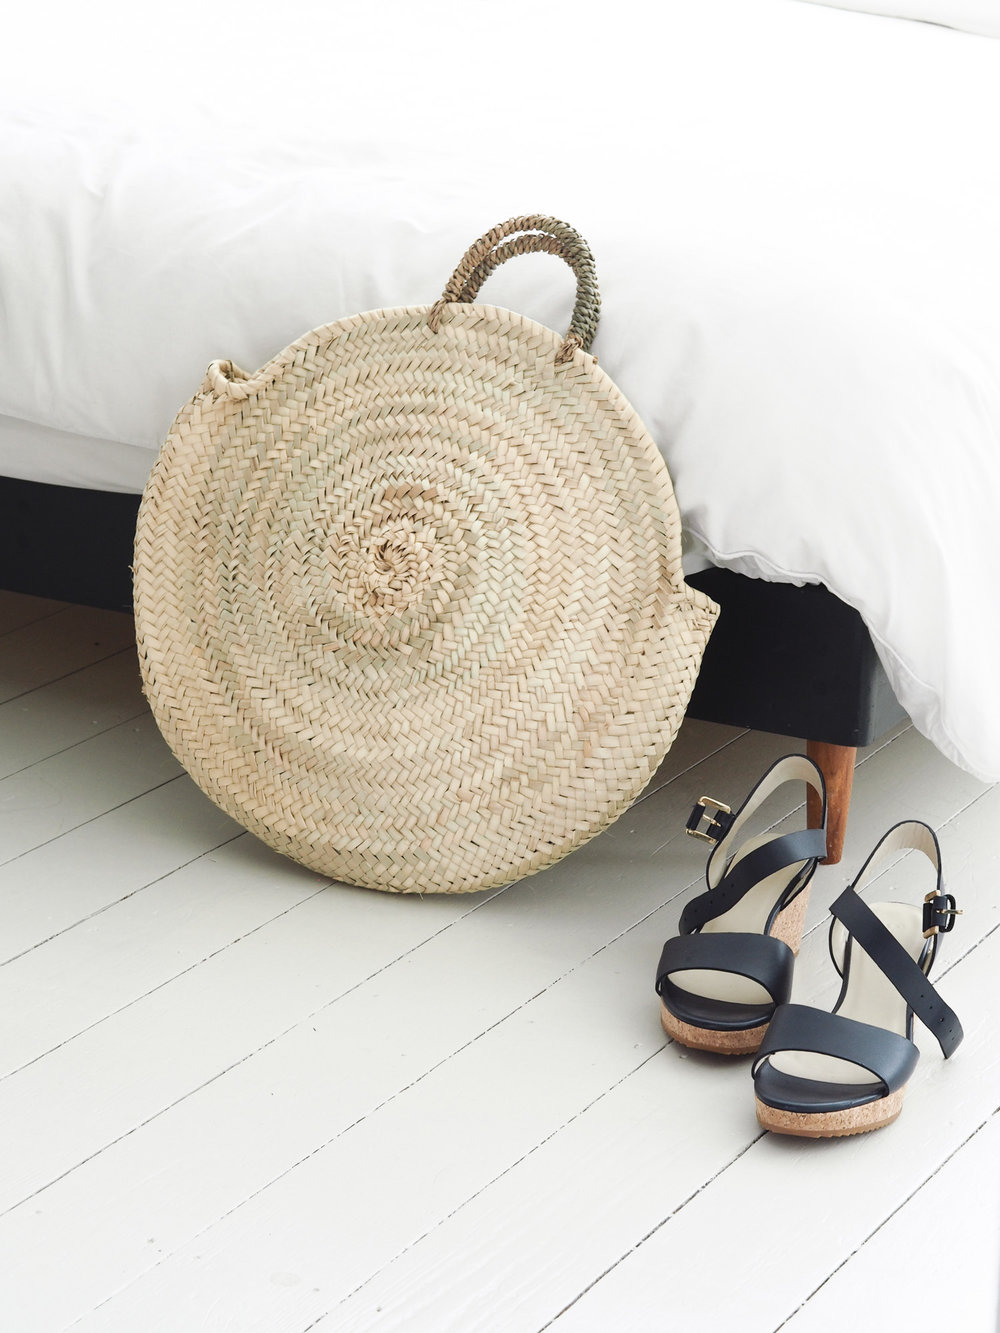 Straw basket and wedge sandals | Design Hunter